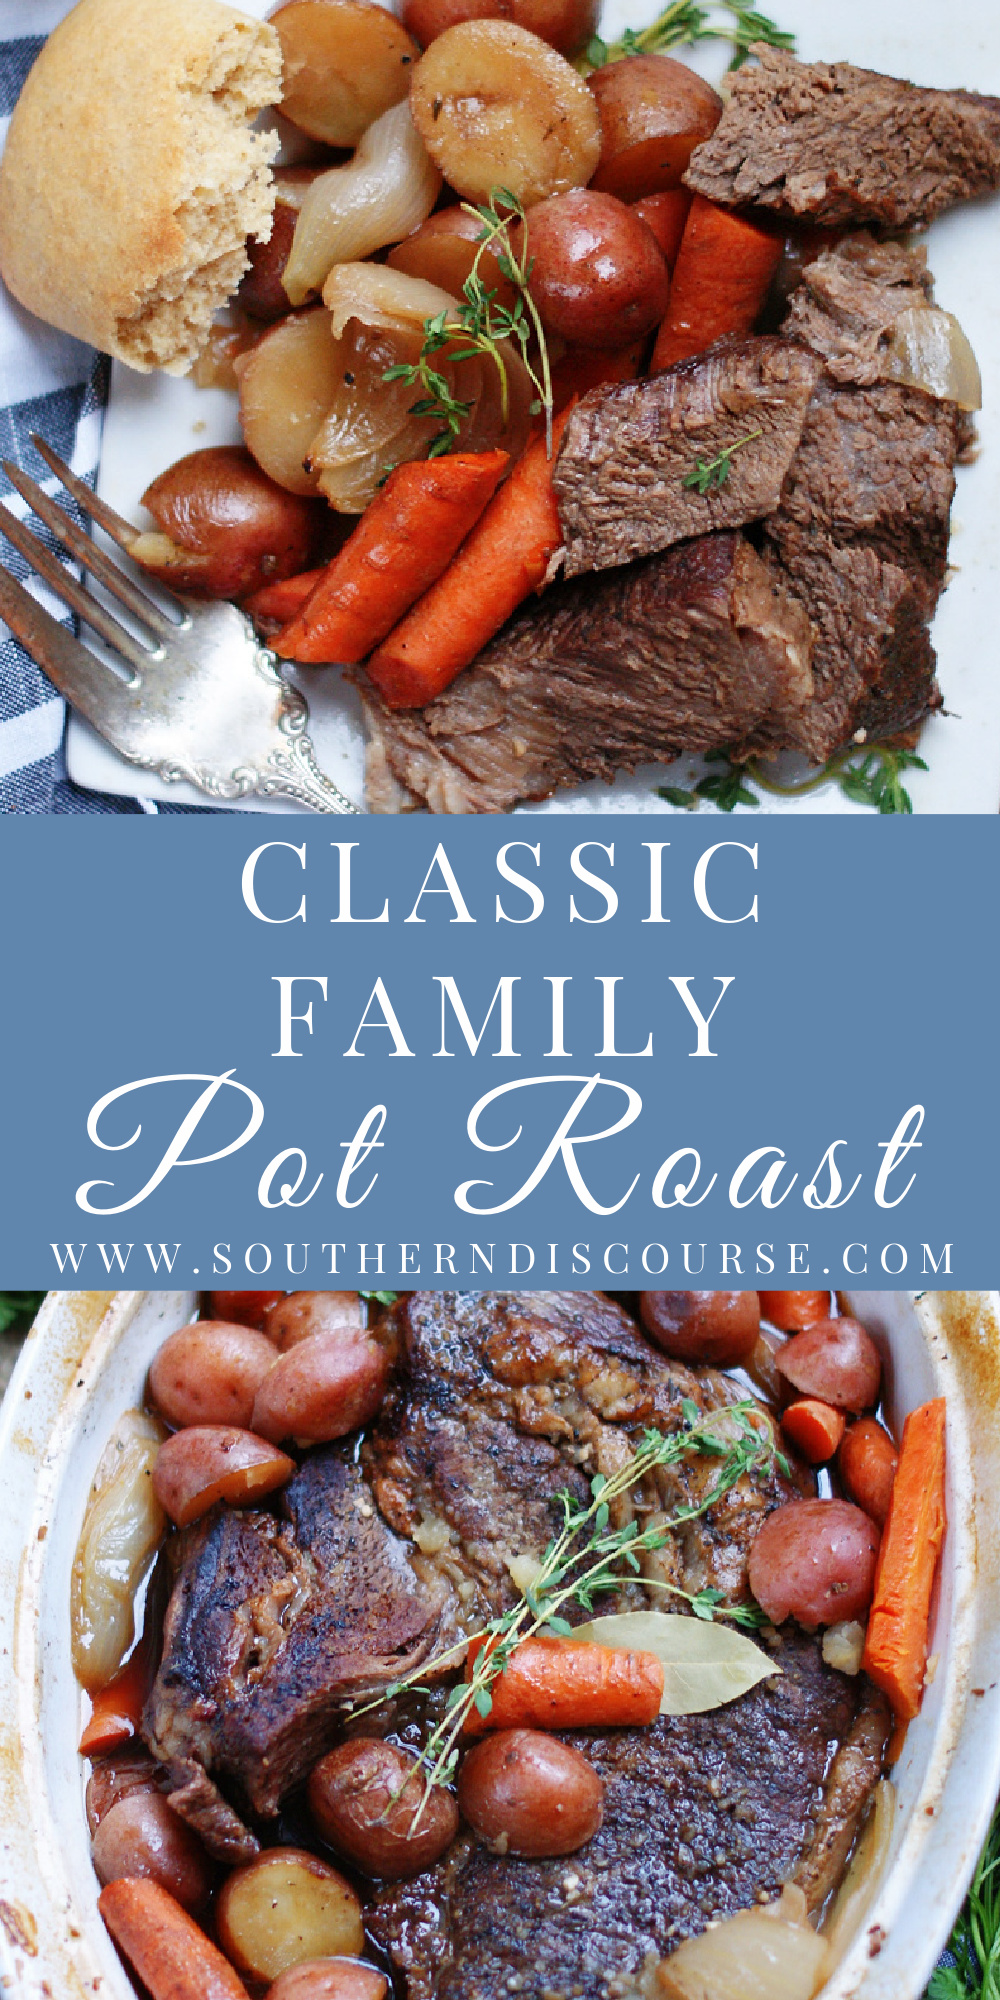 Nothing says family Sunday dinner like a melt-in-your-mouth, fork tender Classic Family Pot Roast.  Cooked low and slow with beef broth, red wine, savory seasonings, aromatics and plenty of dinner vegetables this classic comfort food recipe has been gathering friends and families around the dinner table for more years than we can count!